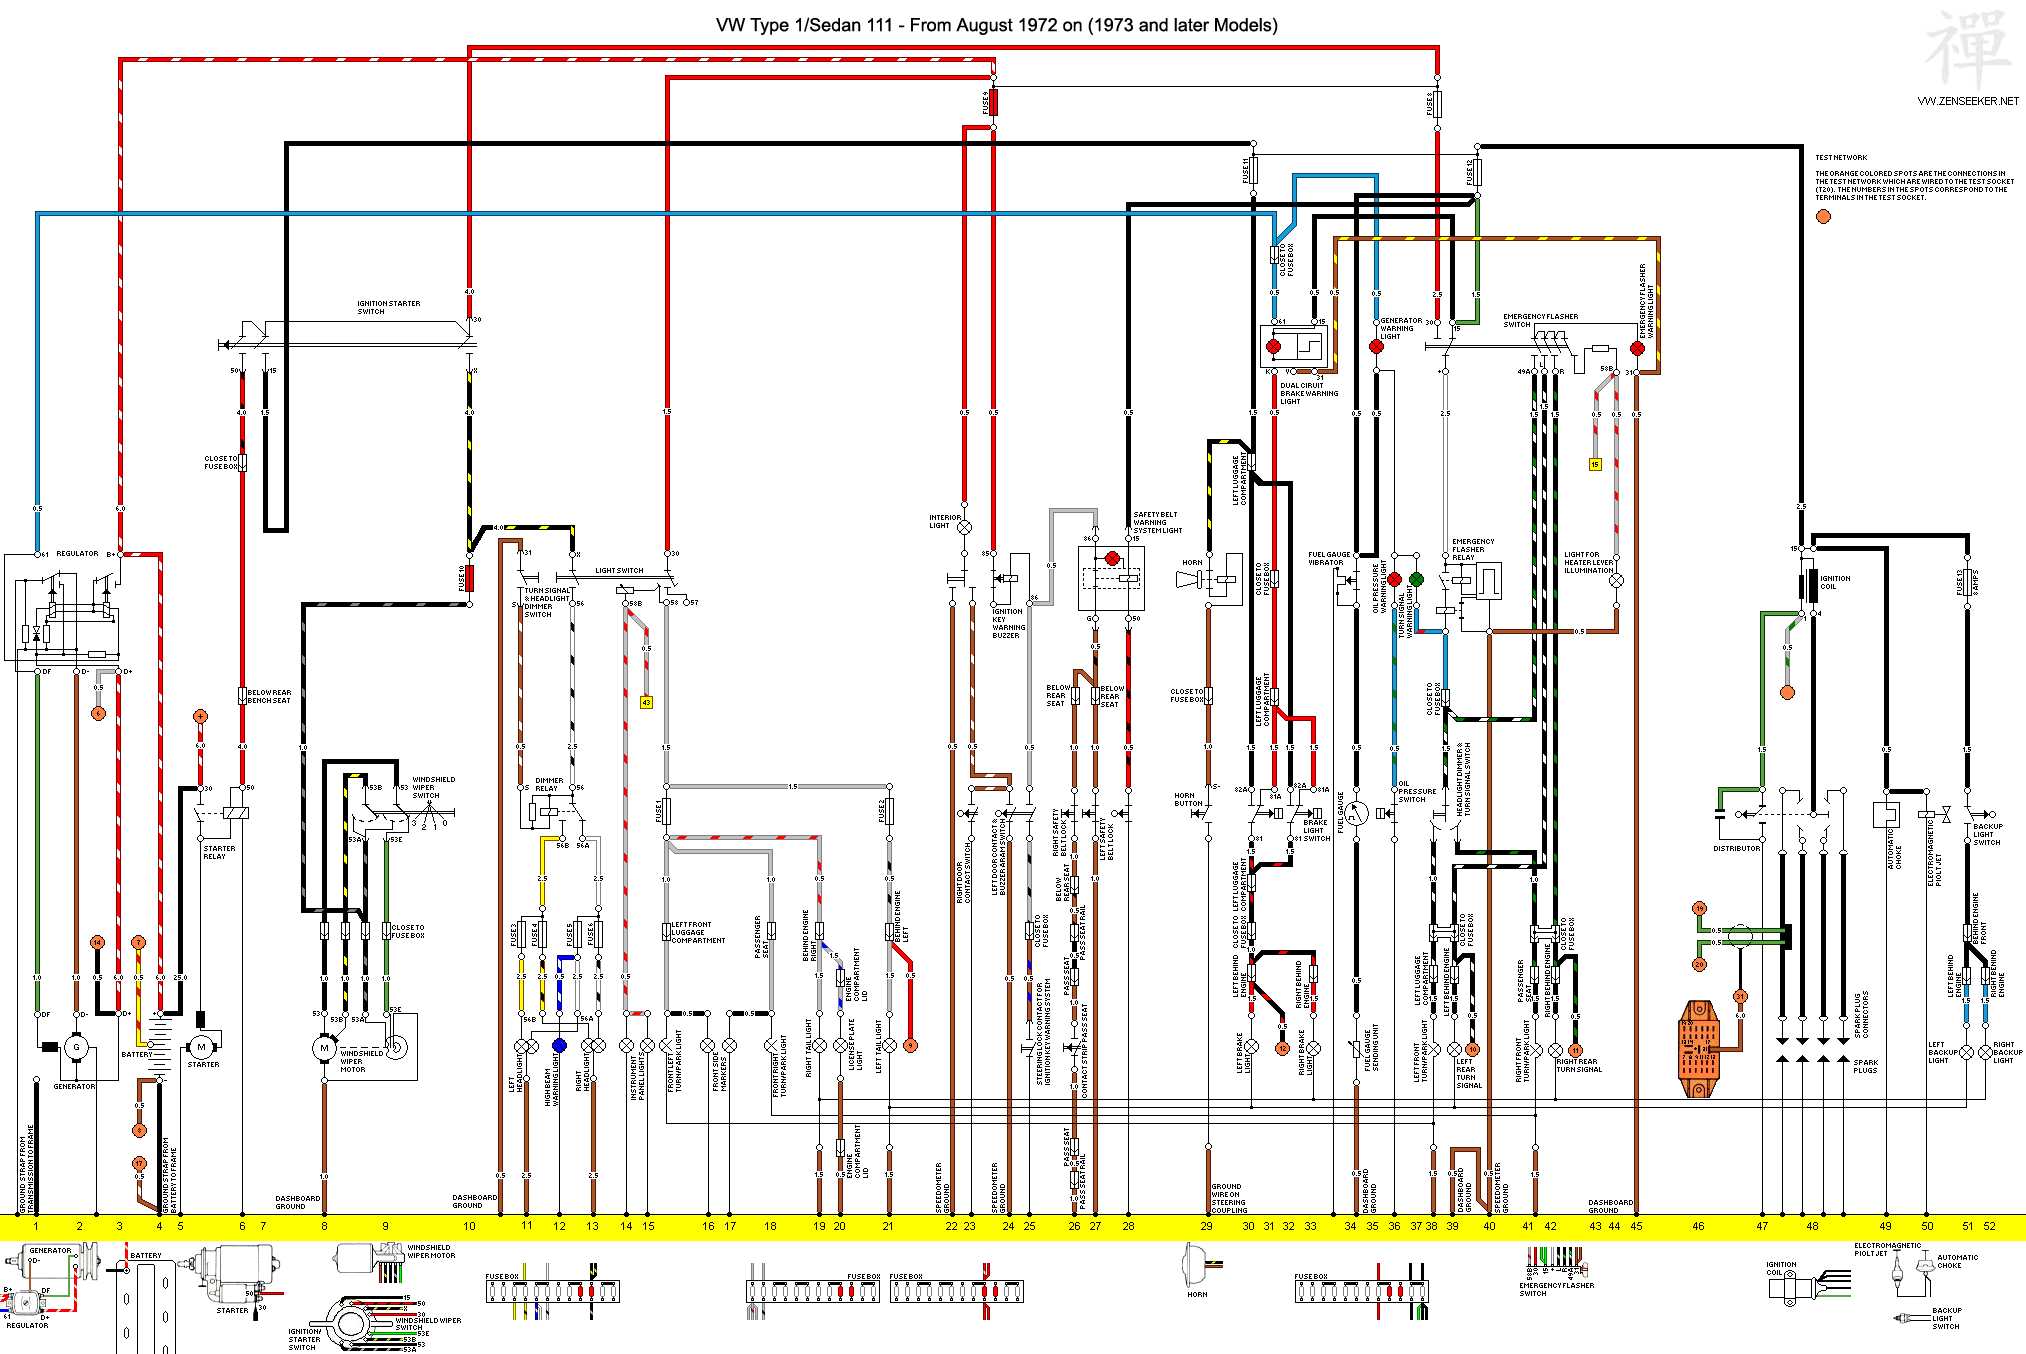 Vw Type 3 Fuel Injection Wiring Diagram Vw Get Free Image About